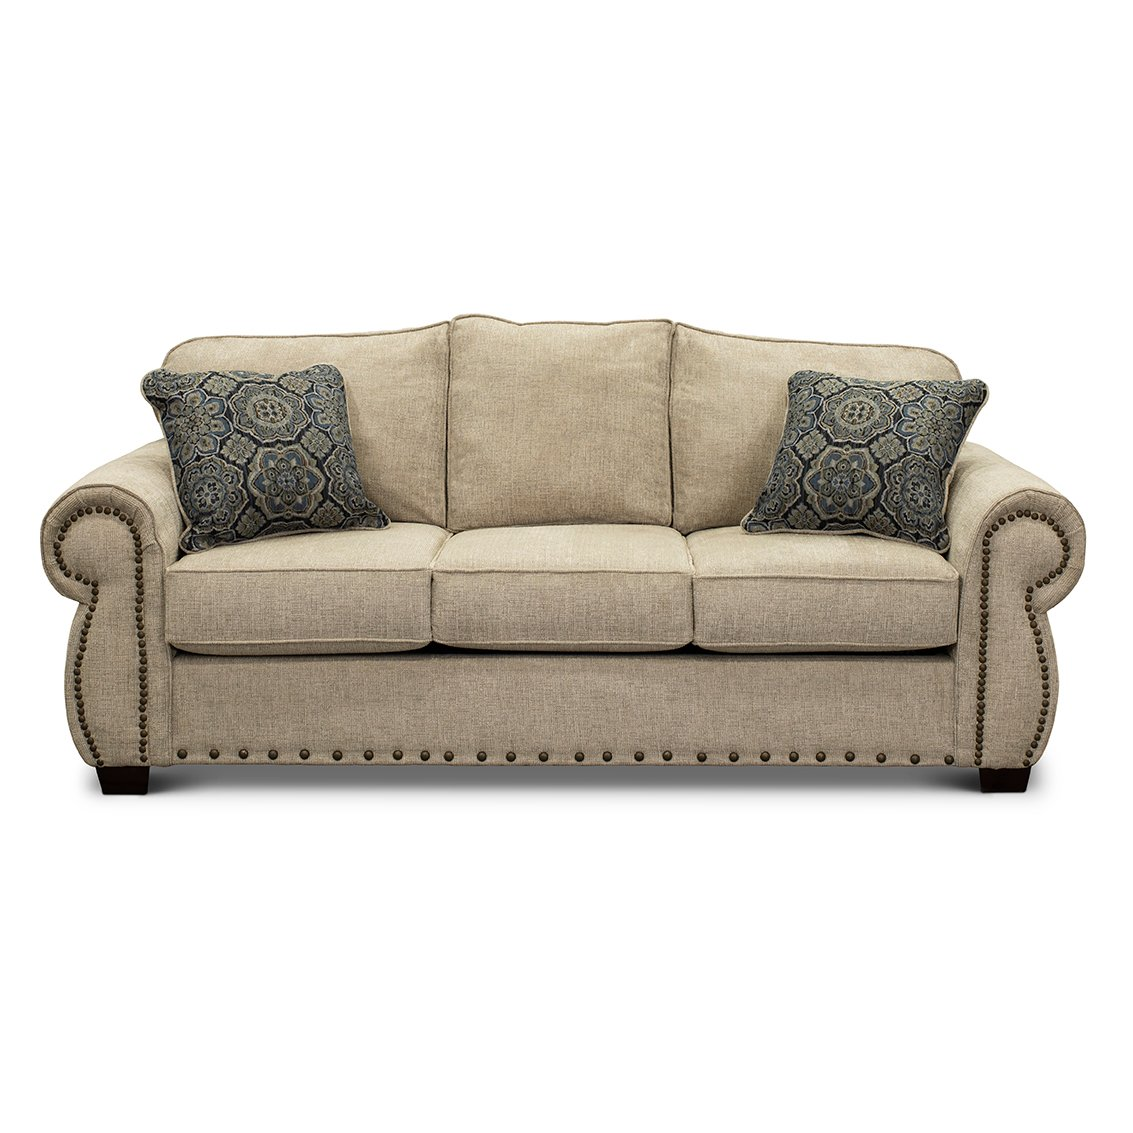 traditional sofa bed la z boy grey leather casual canvas tan southport rc